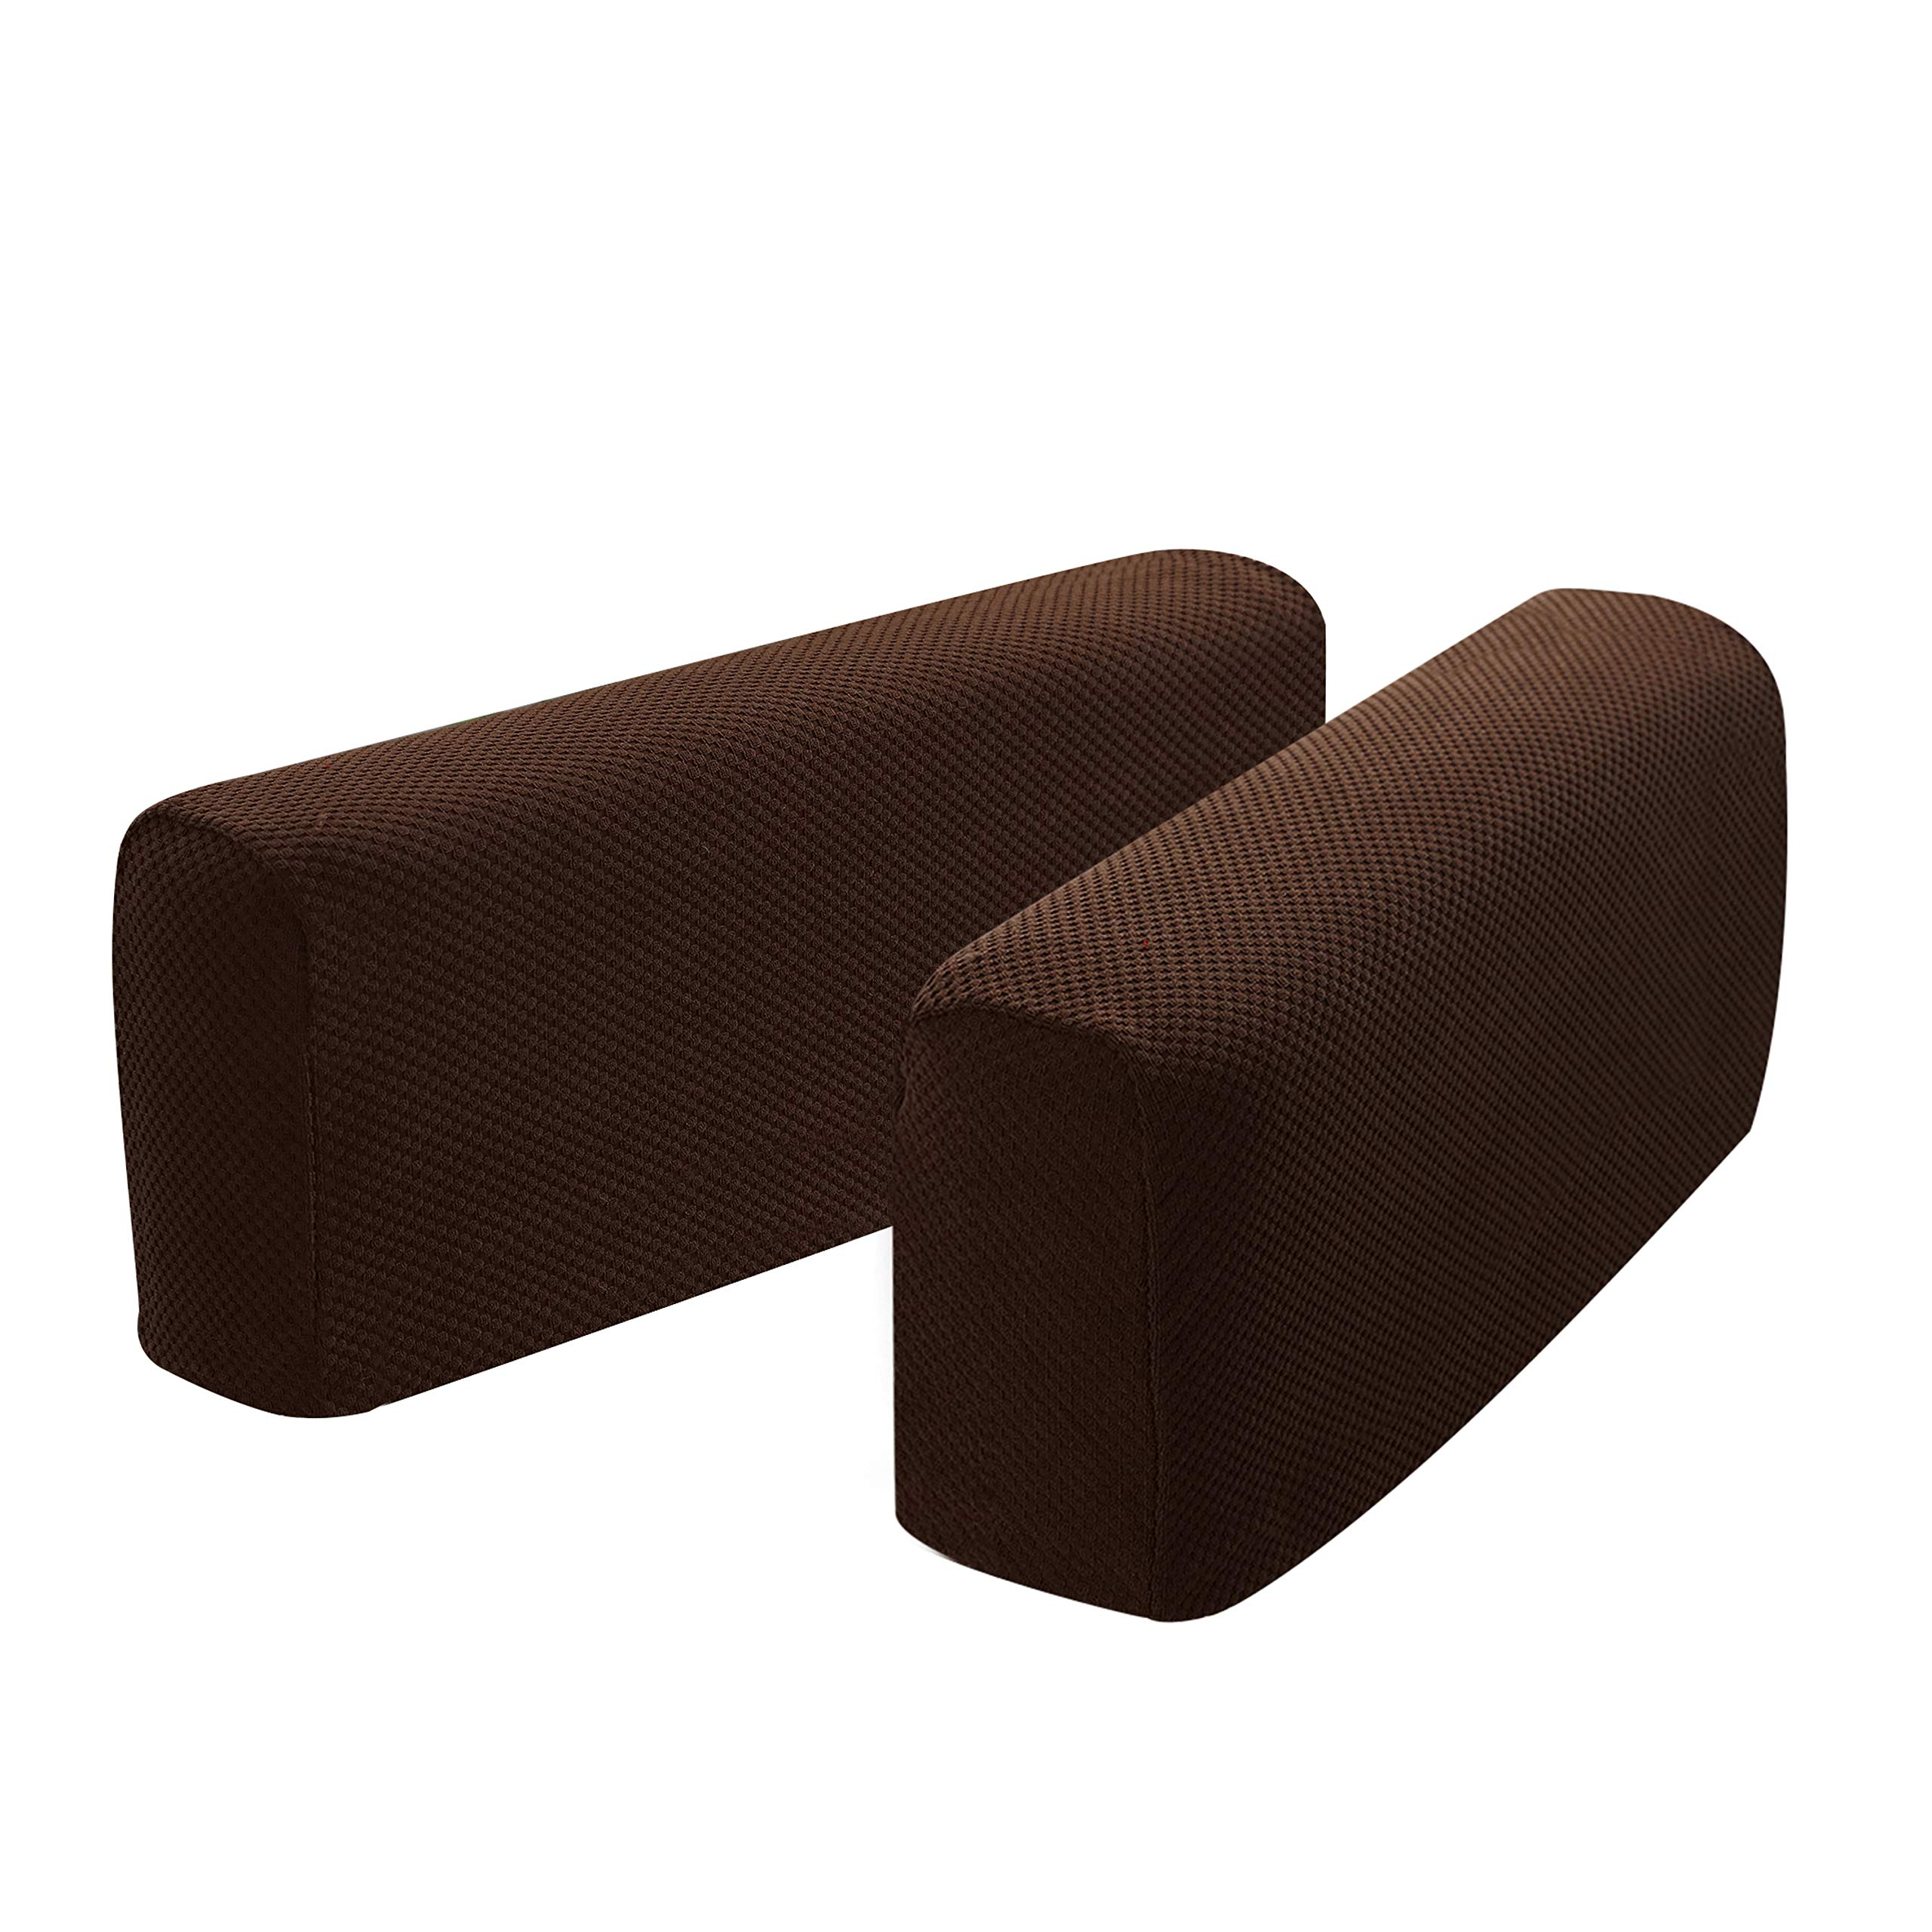 Hanhao Armrest Cover Ultra Thick and Soft Spandex Stretch Pixel Arm Cover for Recliners Sofas Chairs Loveseats Elastic Anti Slip Furniture Armrest Protector for Couch Set of 2 (Chocolate)